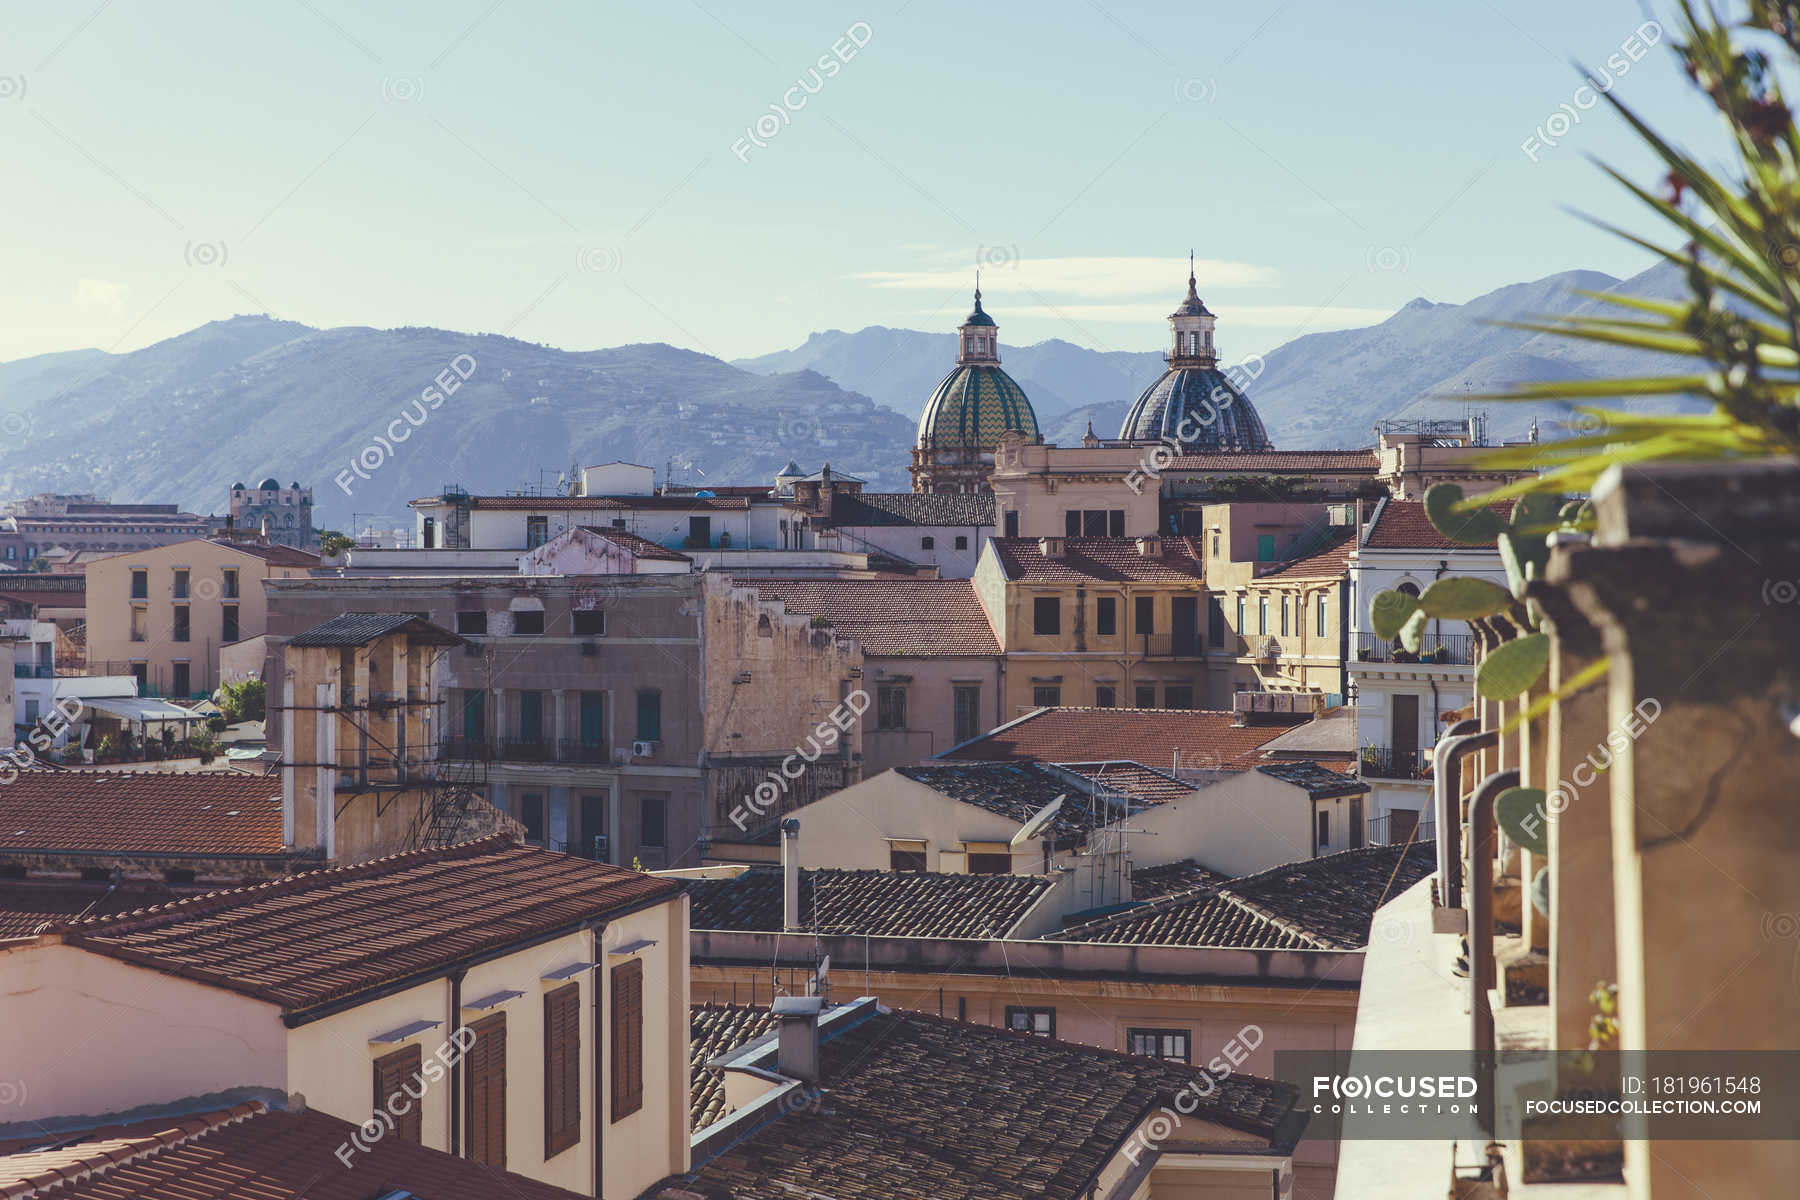 Italy, Sicily, Palermo, View over the roofs of Palermo ...